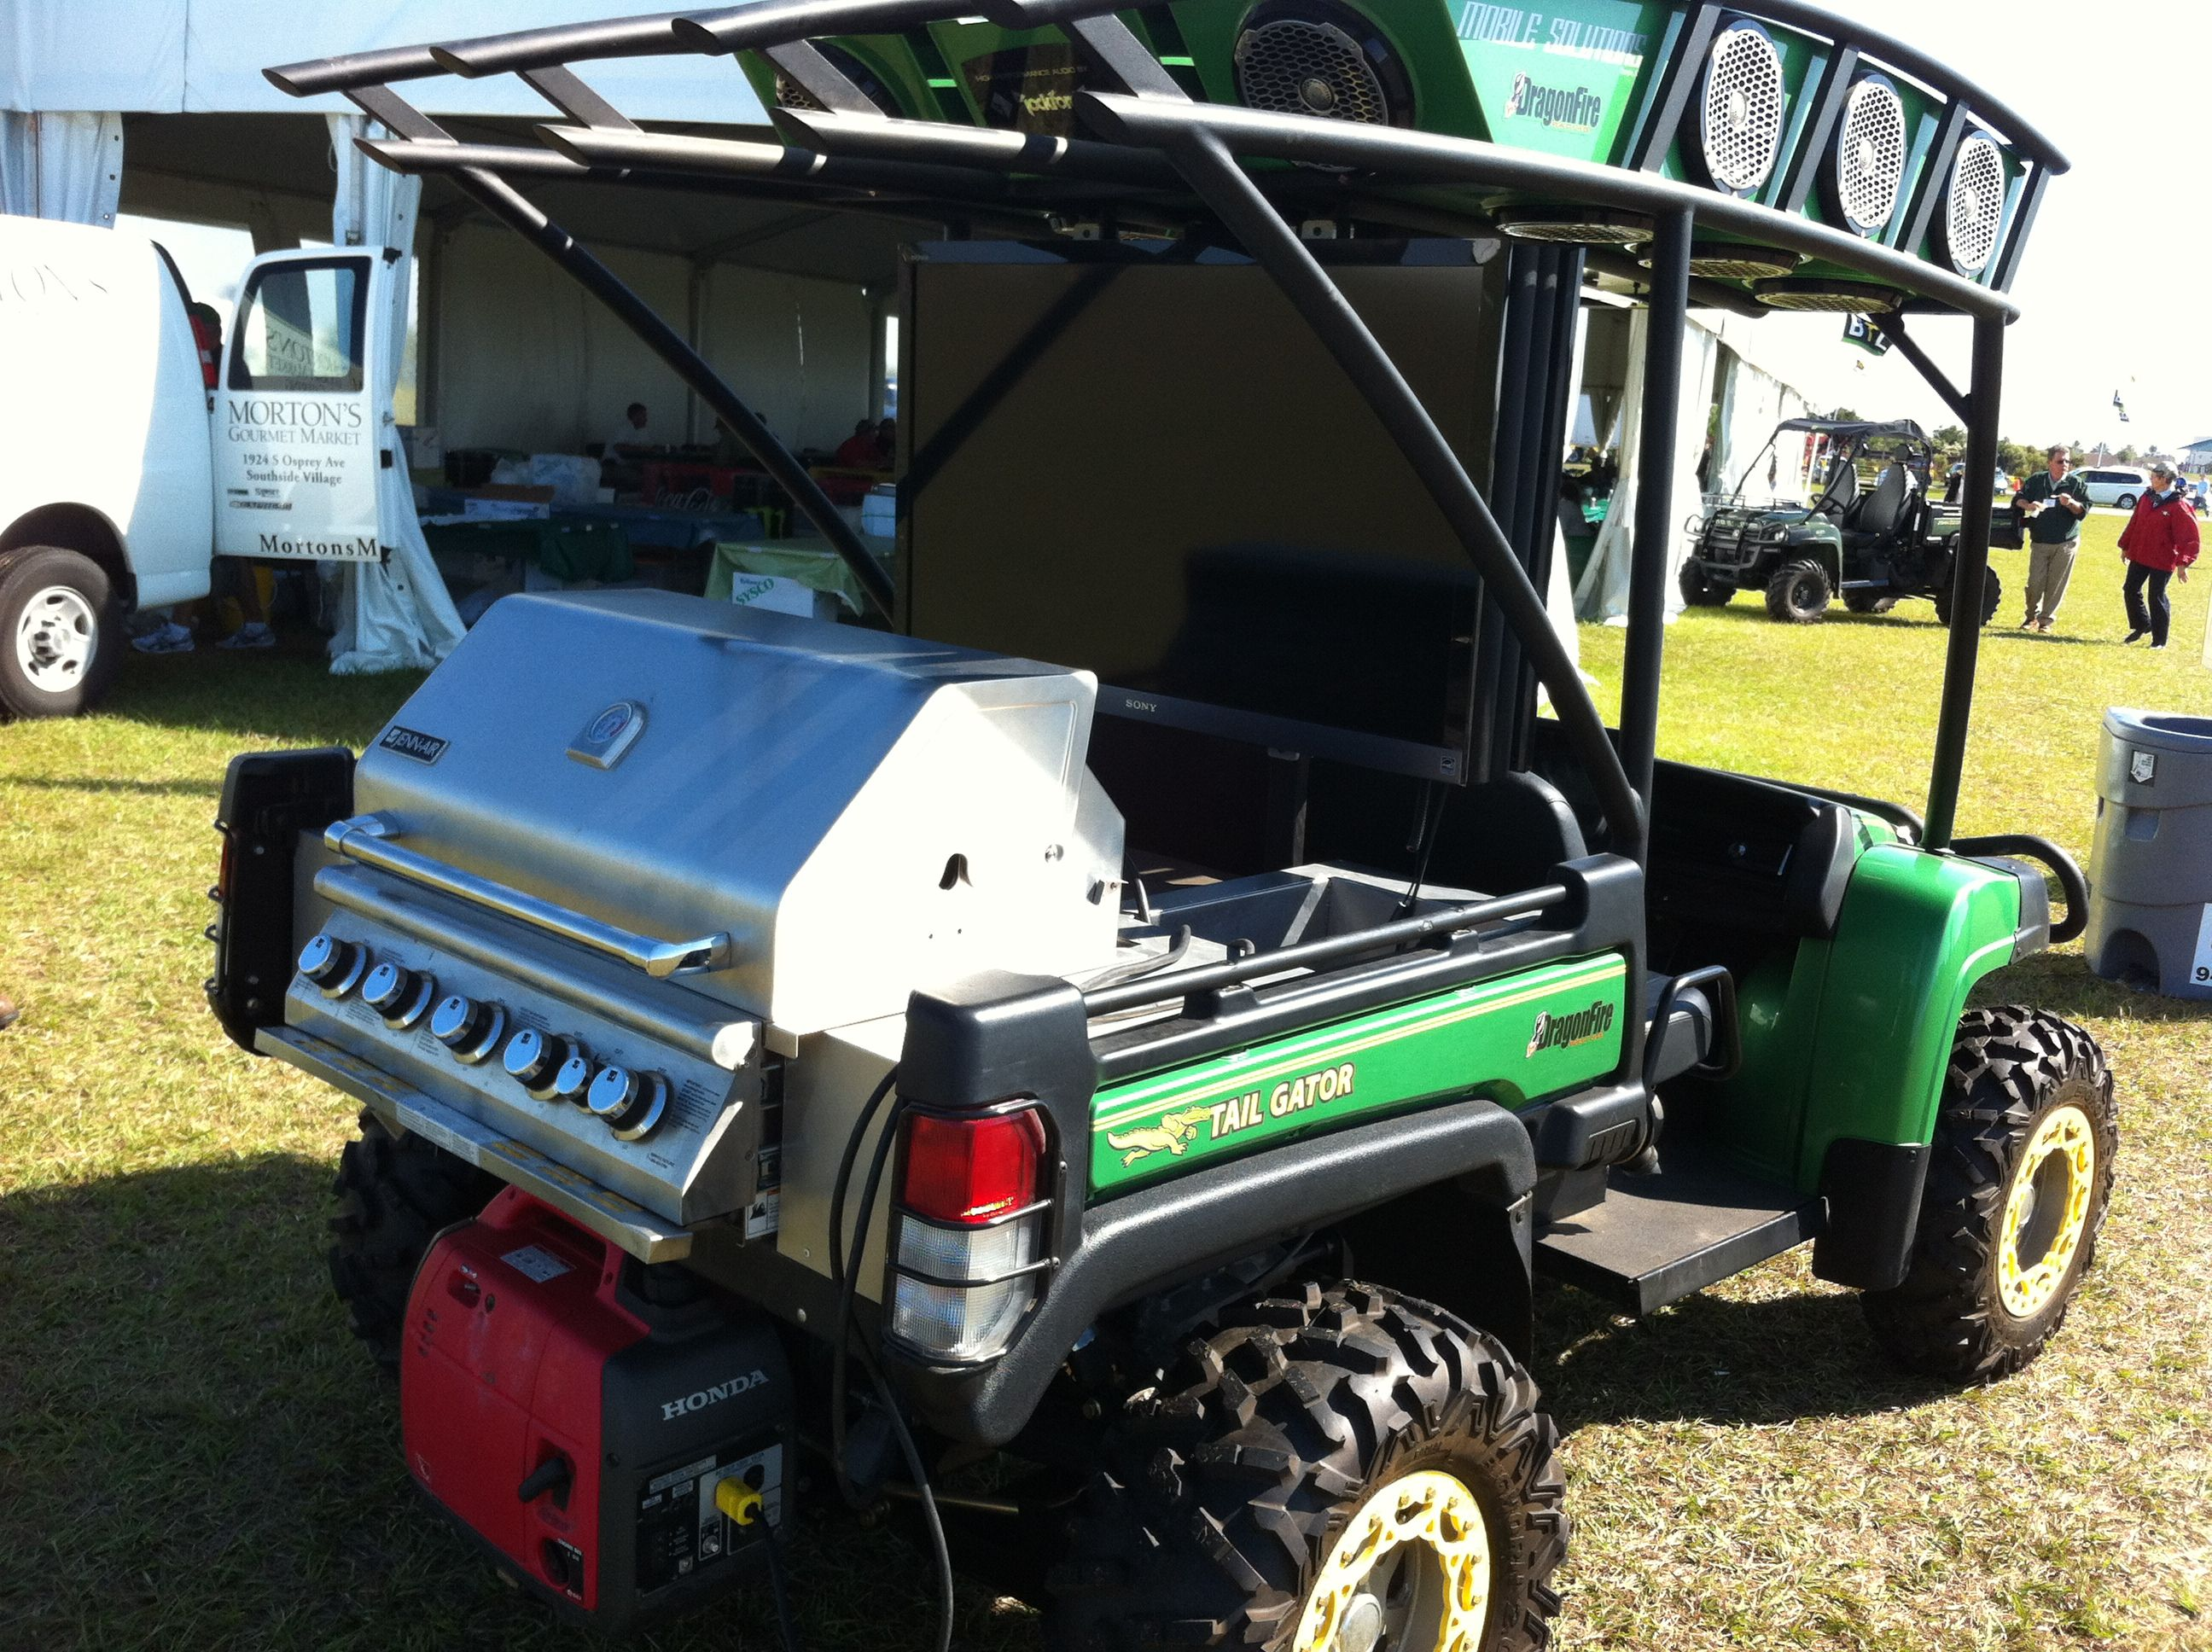 Tailgating Gator- Two plasmas, bbq, speakers all the way around and a generator to power all.